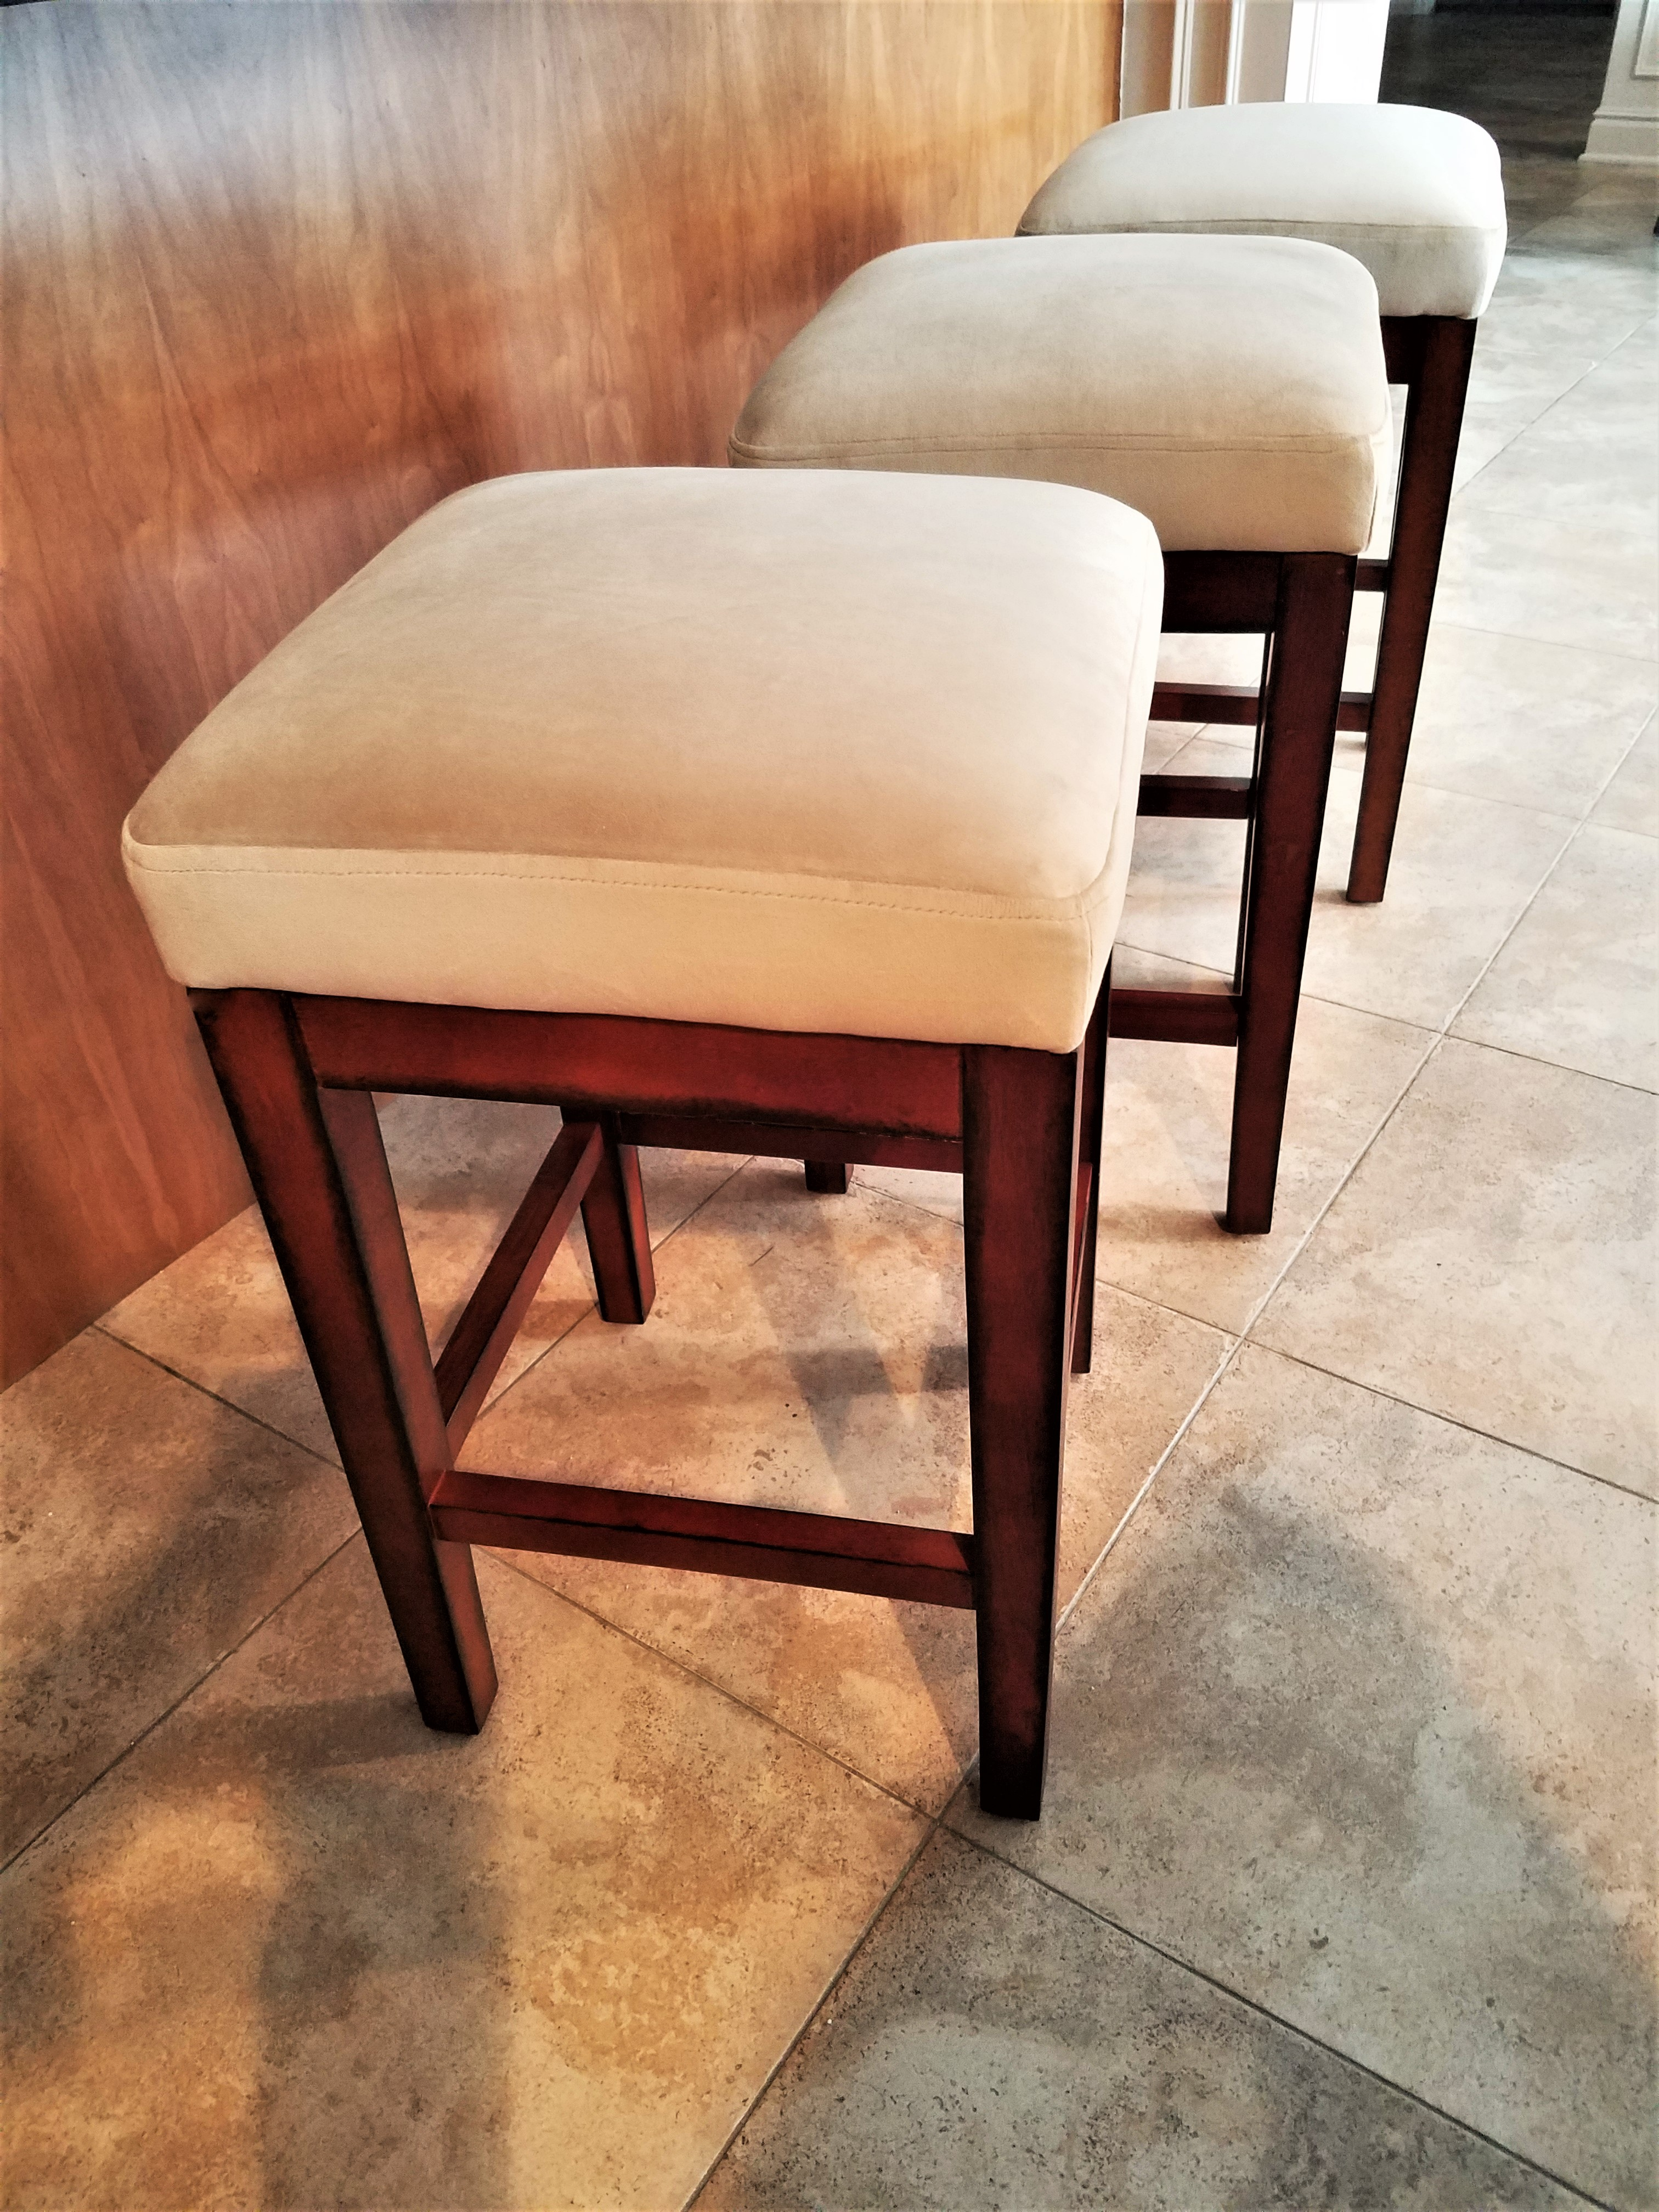 How To Reupholster A Bar Stool Seat Renee Romeo